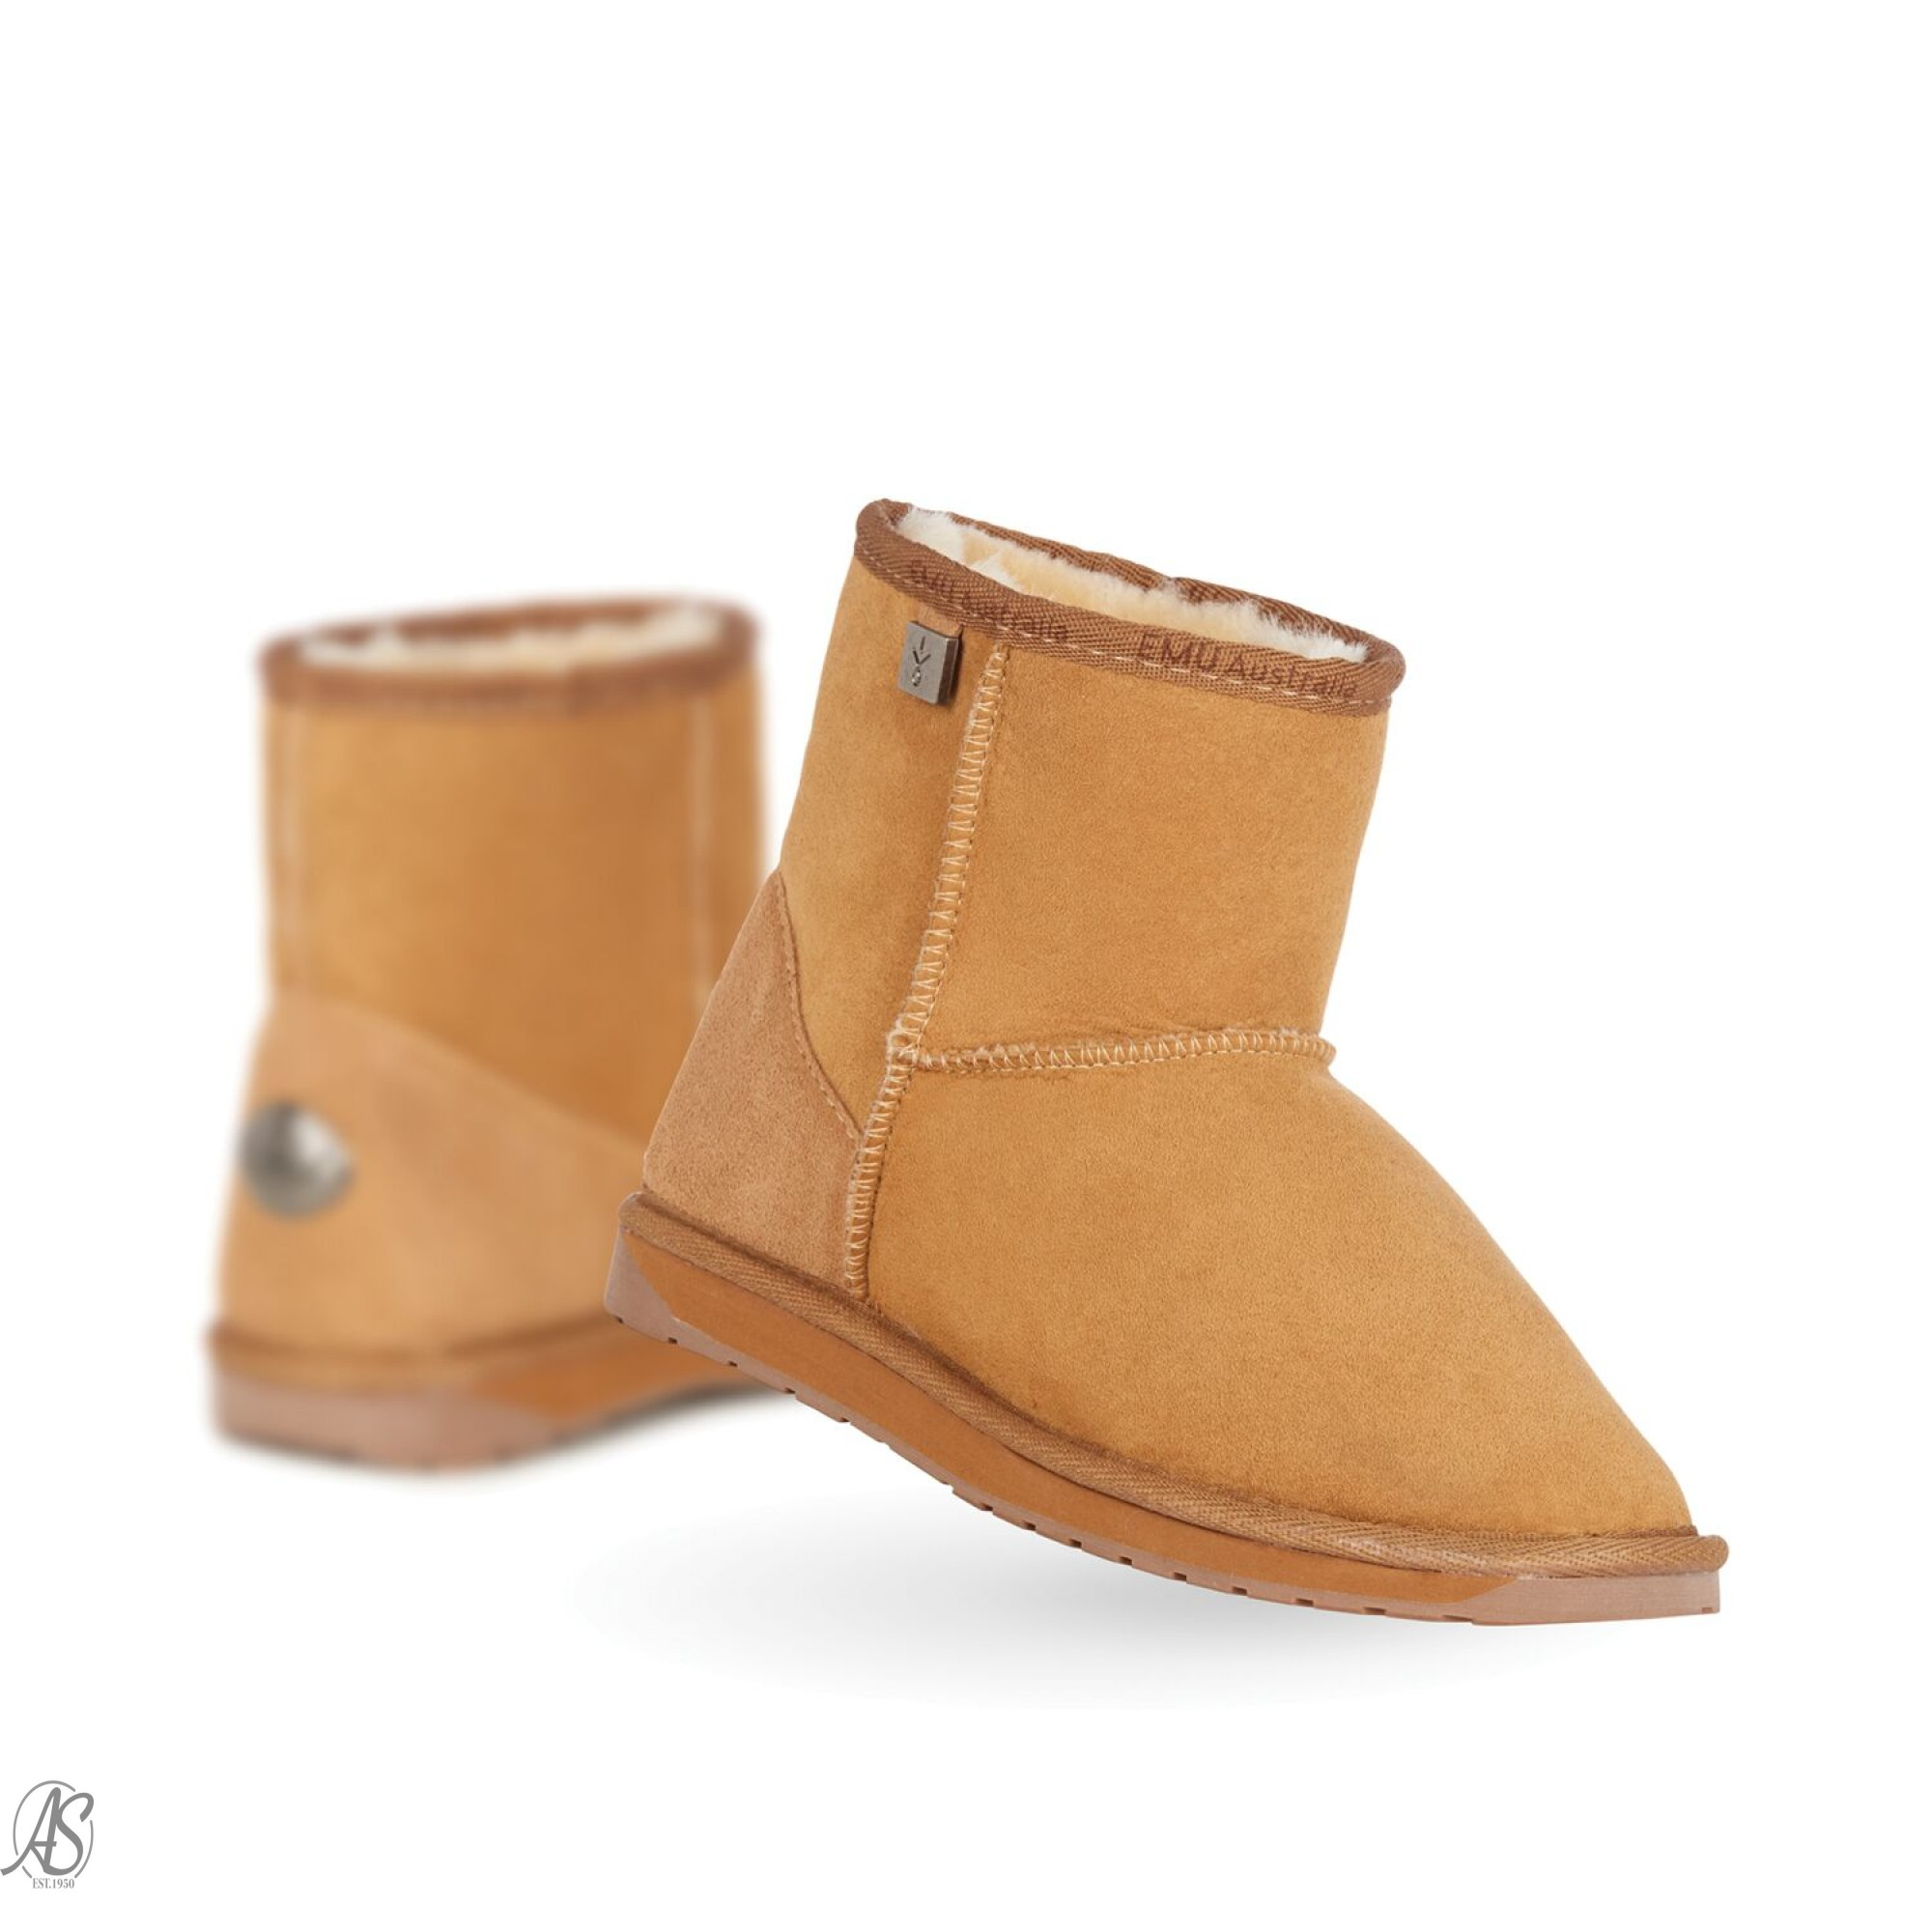 579f008f73e Made from the finest Australian sheepskin, the Darwin is a comfortable boot  with a seam front finish, to keep your feet super warm in winter